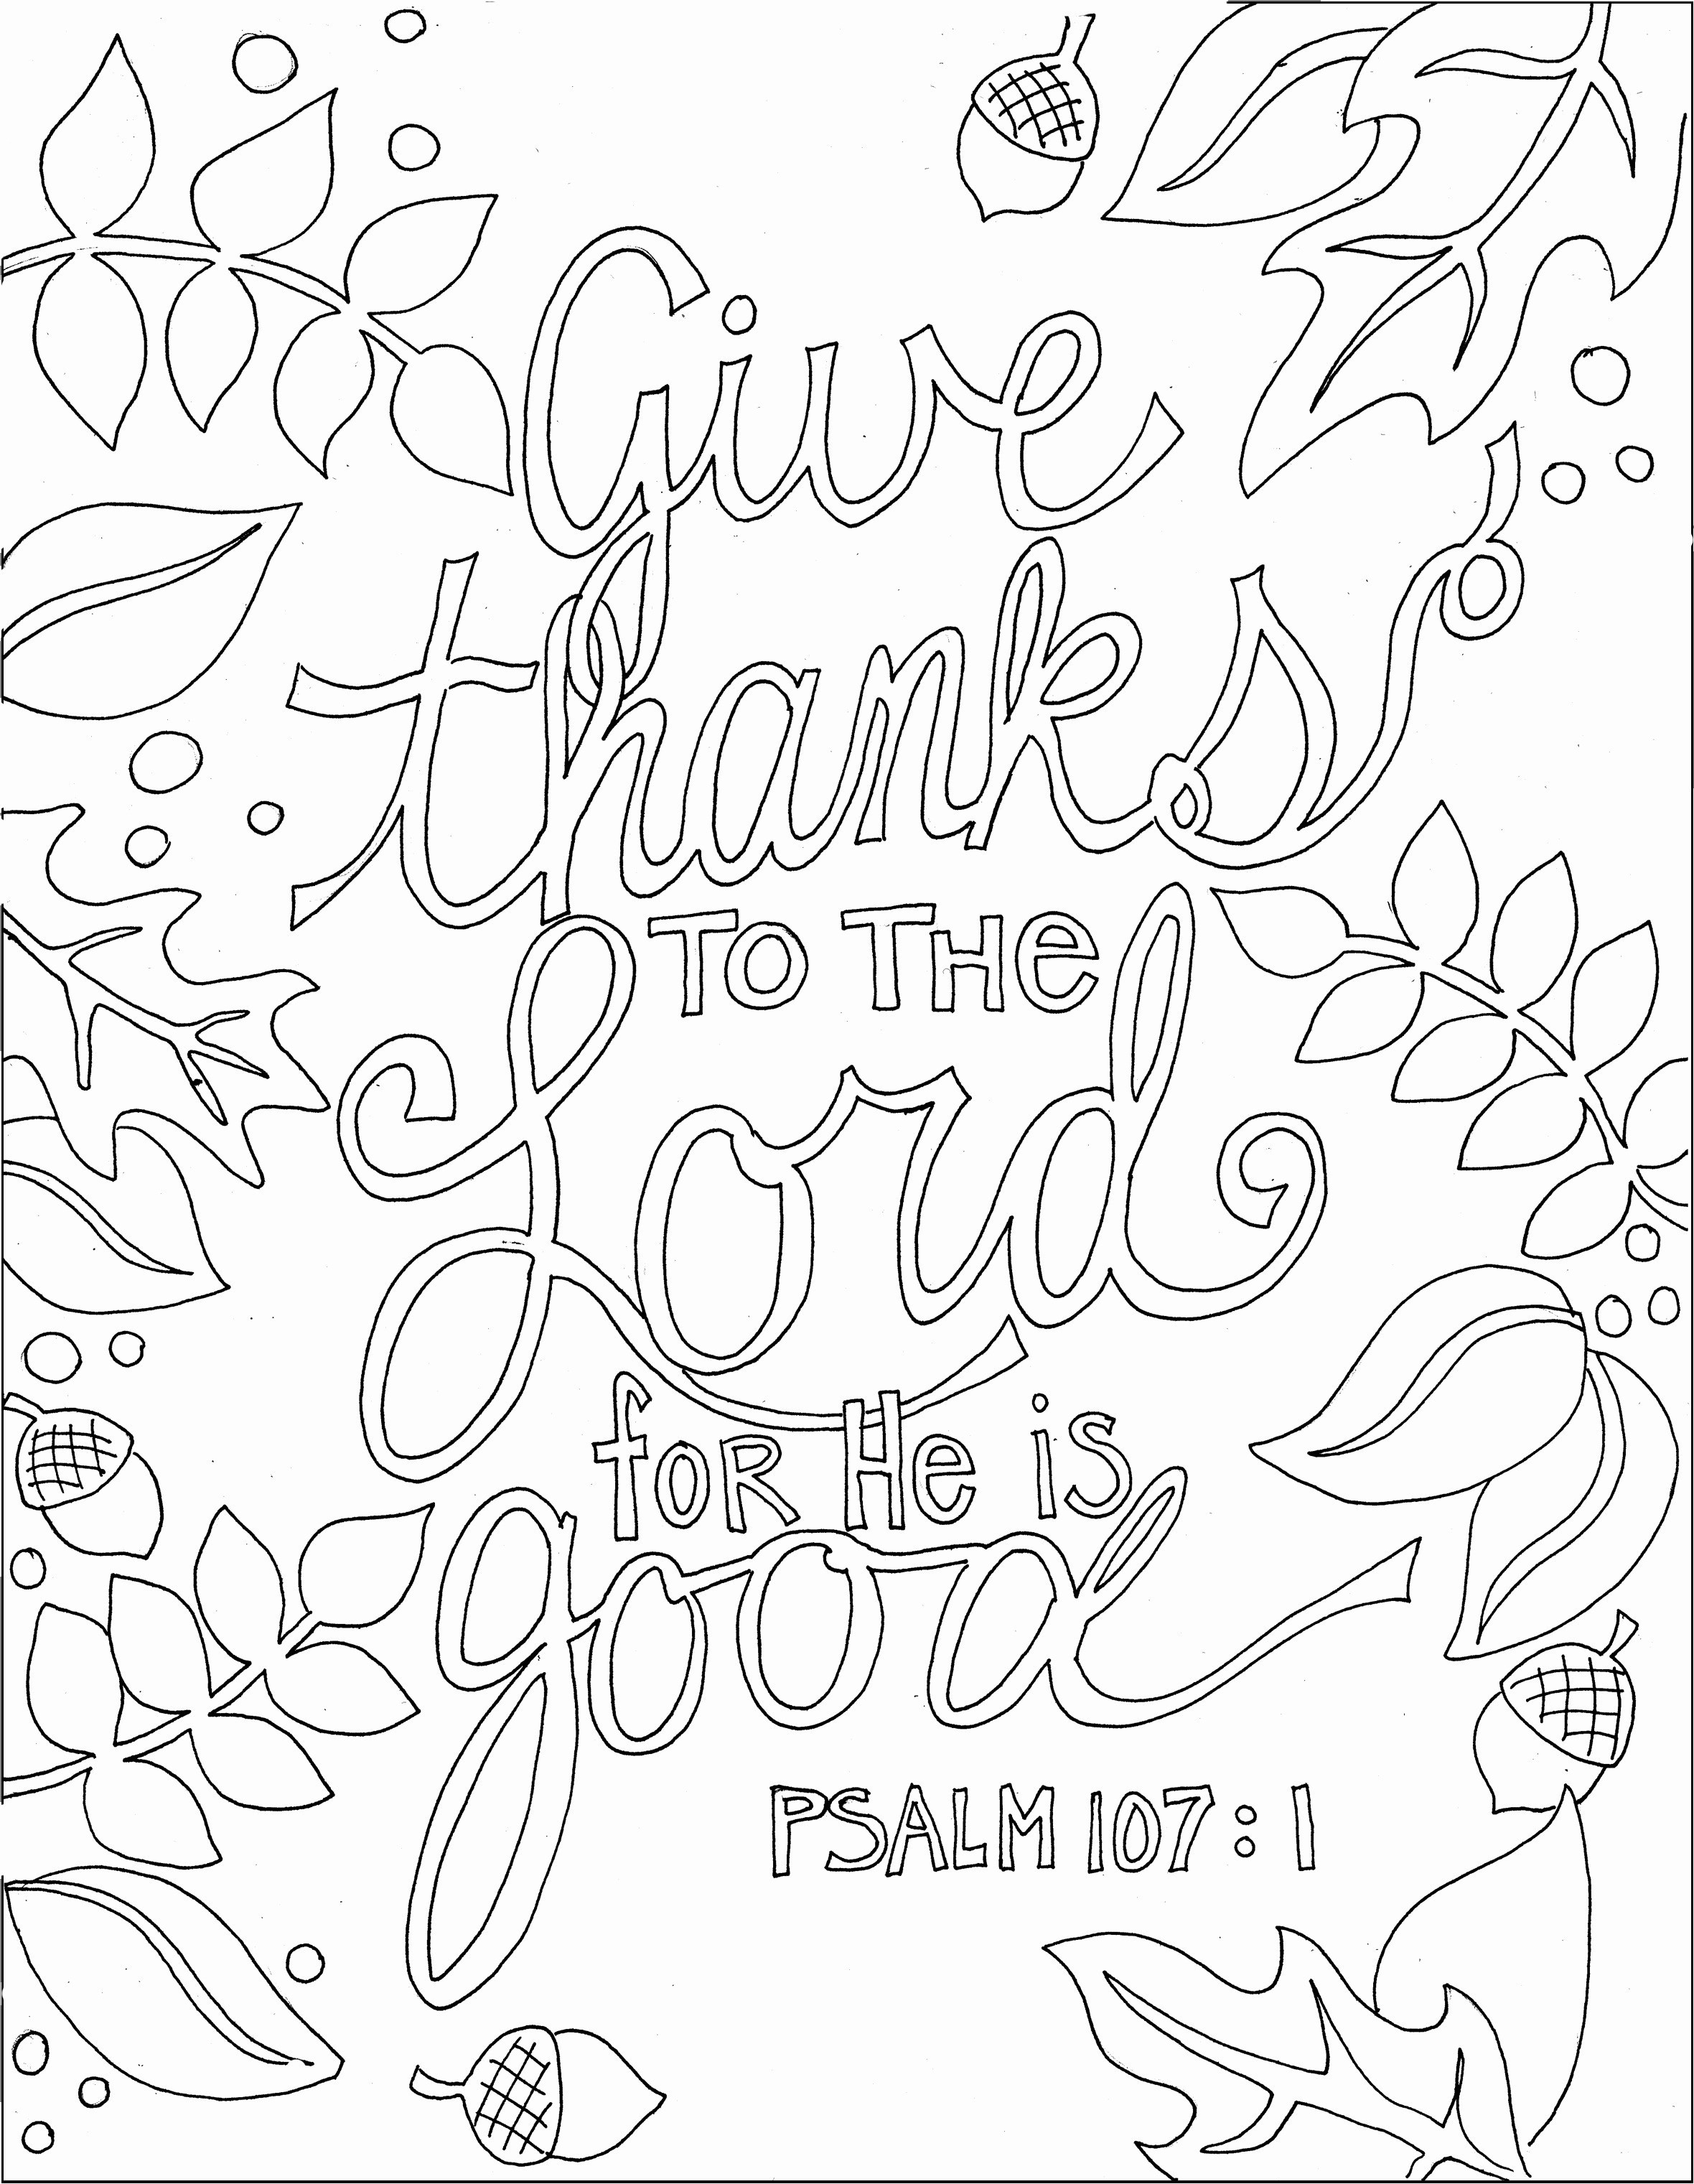 Coloring Pages Bible Stories Free Unique Bible Verse Coloring Pages - Free Printable Bible Coloring Pages With Verses